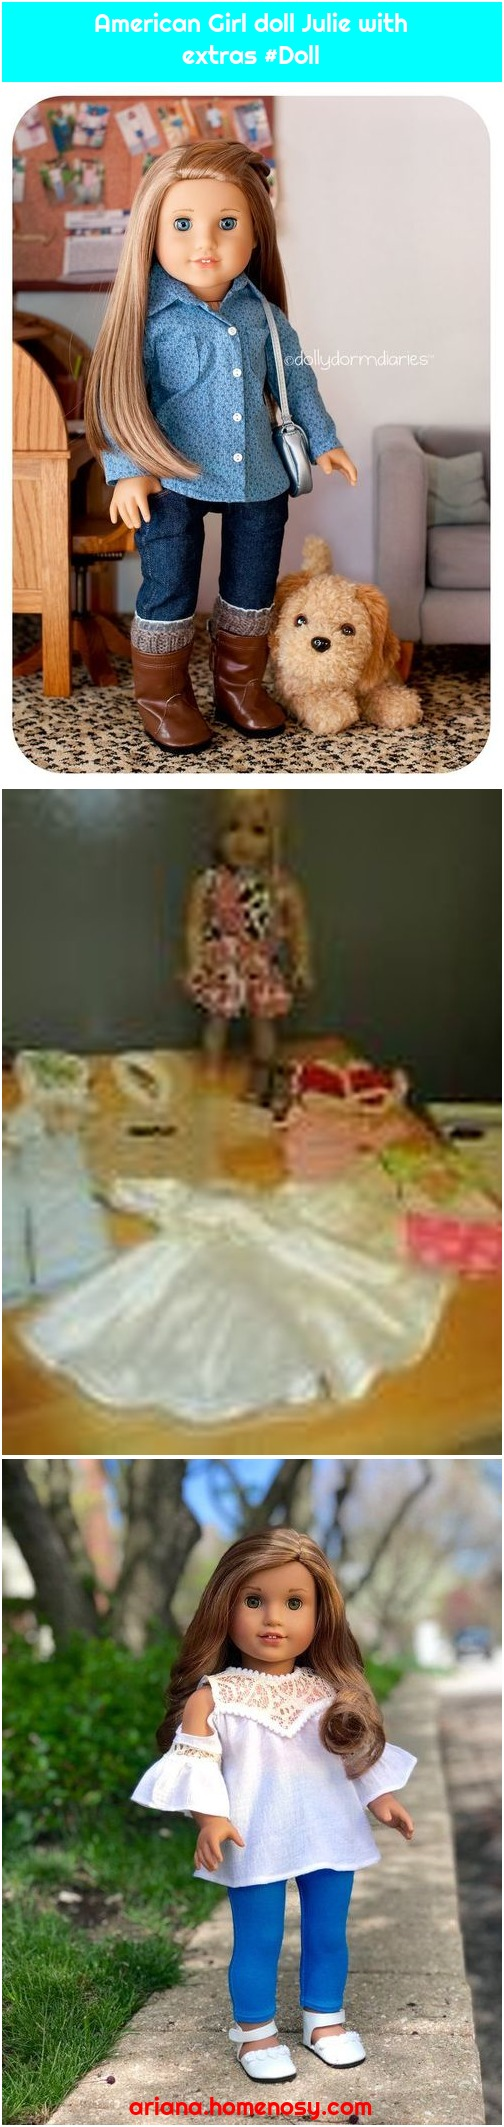 American Girl doll Julie with extras #Doll